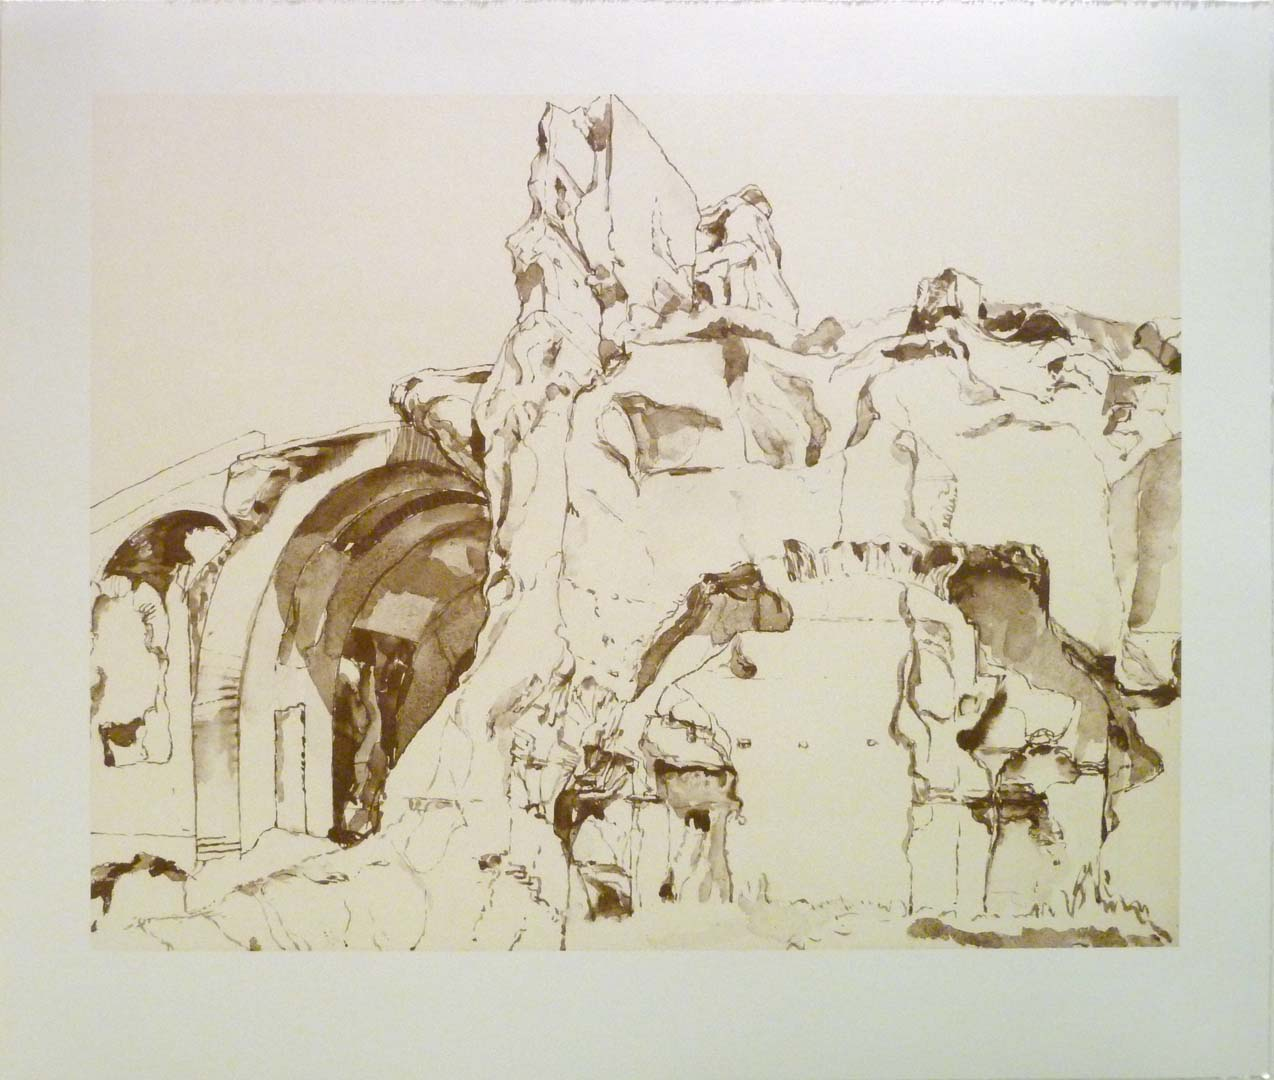 2011 Imperial Palace #2 Lithograph on Paper 20.5 x 24.5